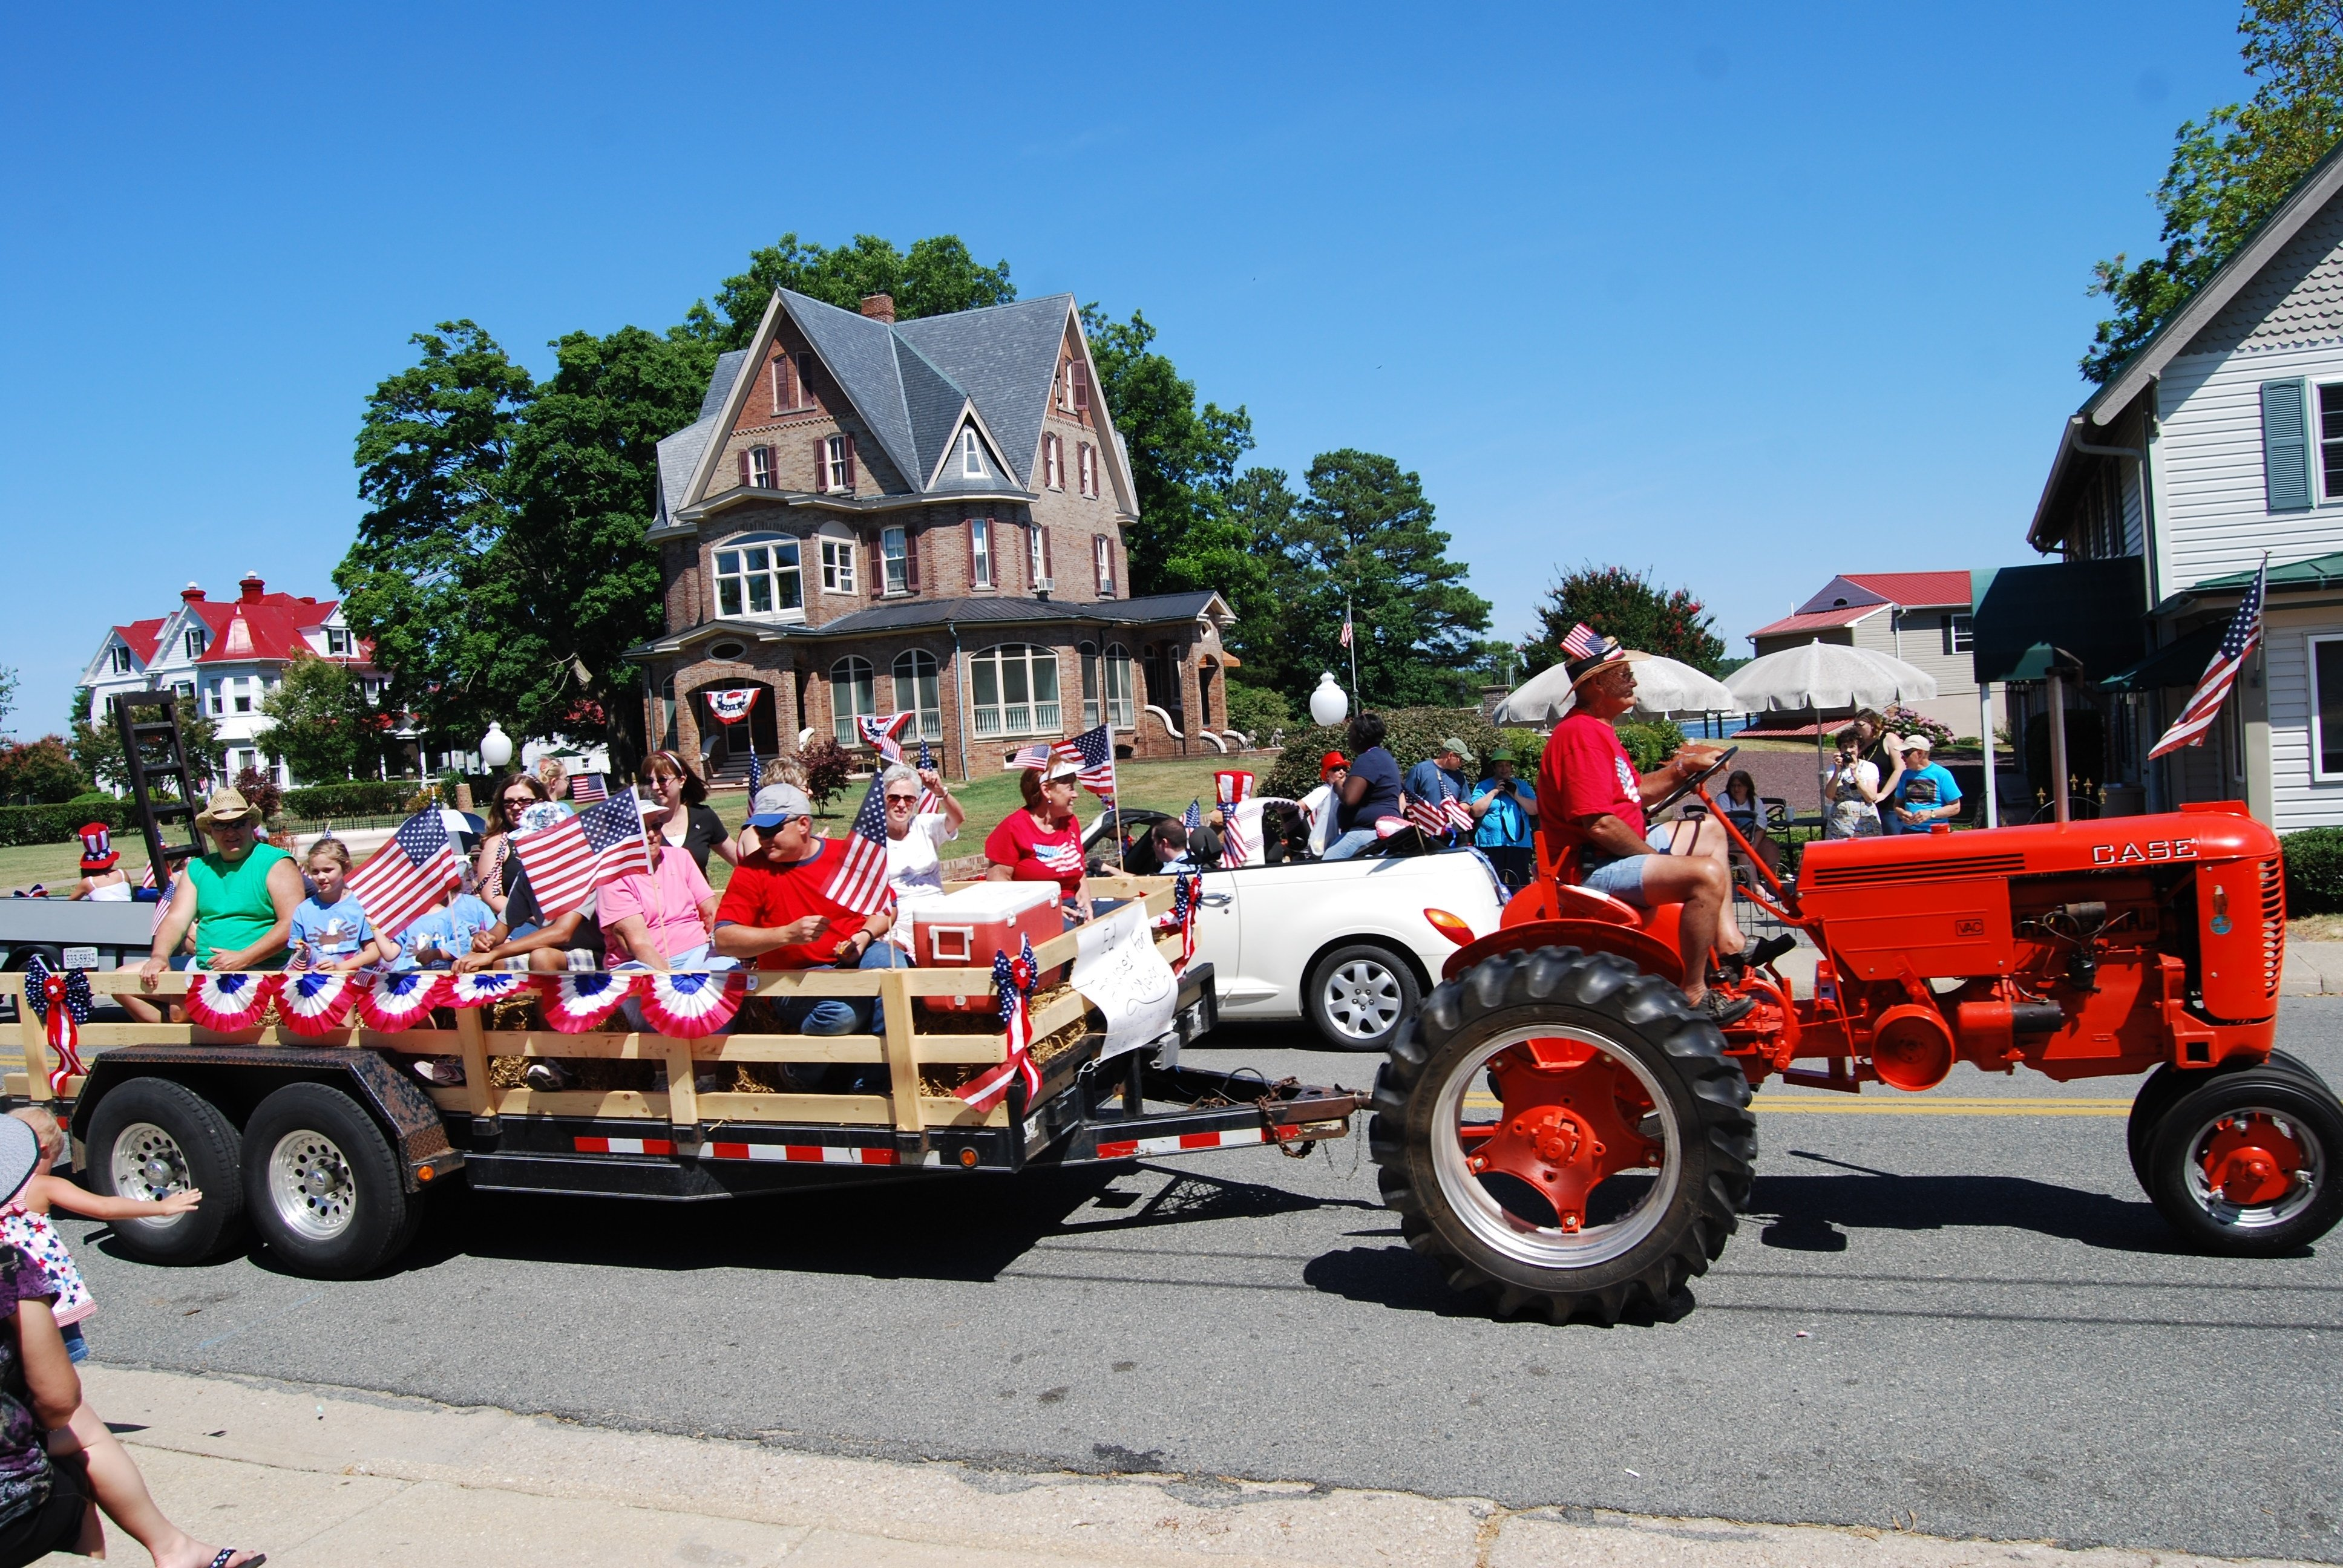 10 Spectacular Fourth Of July Float Ideas 4th of july parade floats on the day of reedville fourth of july 1 2021